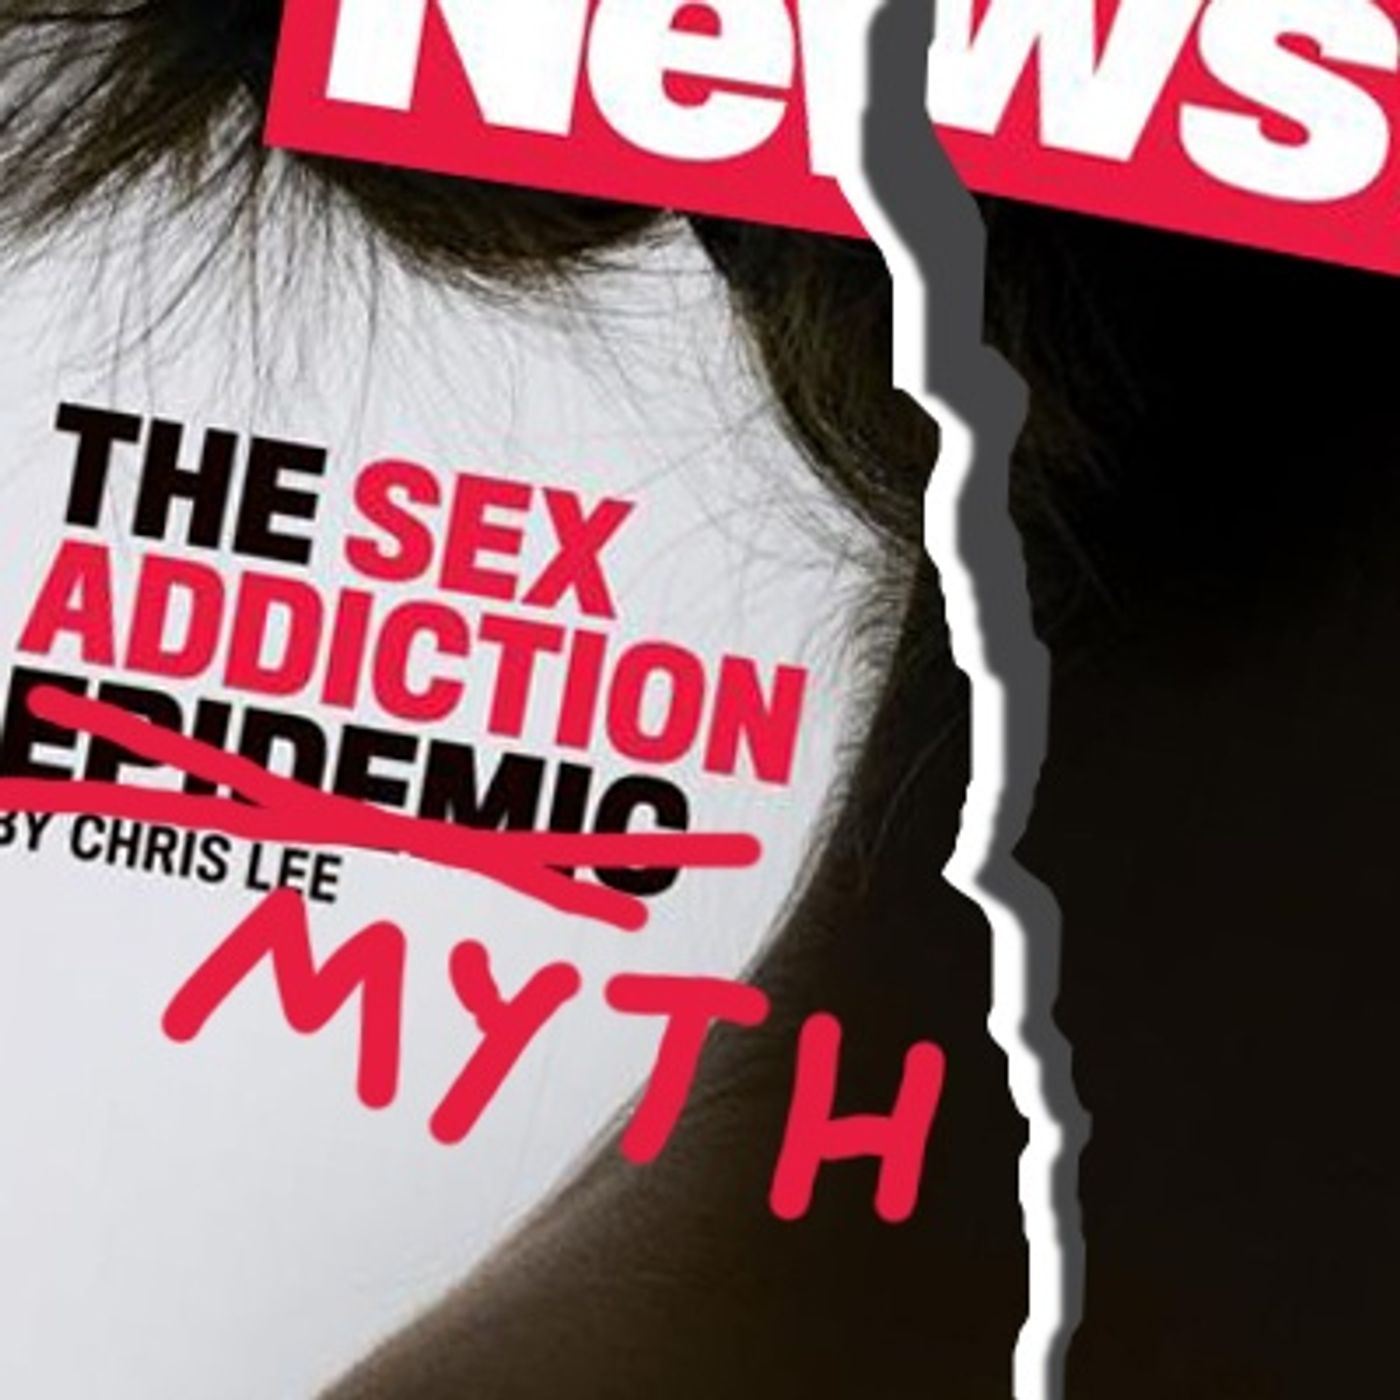 Sex Afflictions & Porn Addictions - Is Sex Addiction Real? Two Titans Debate